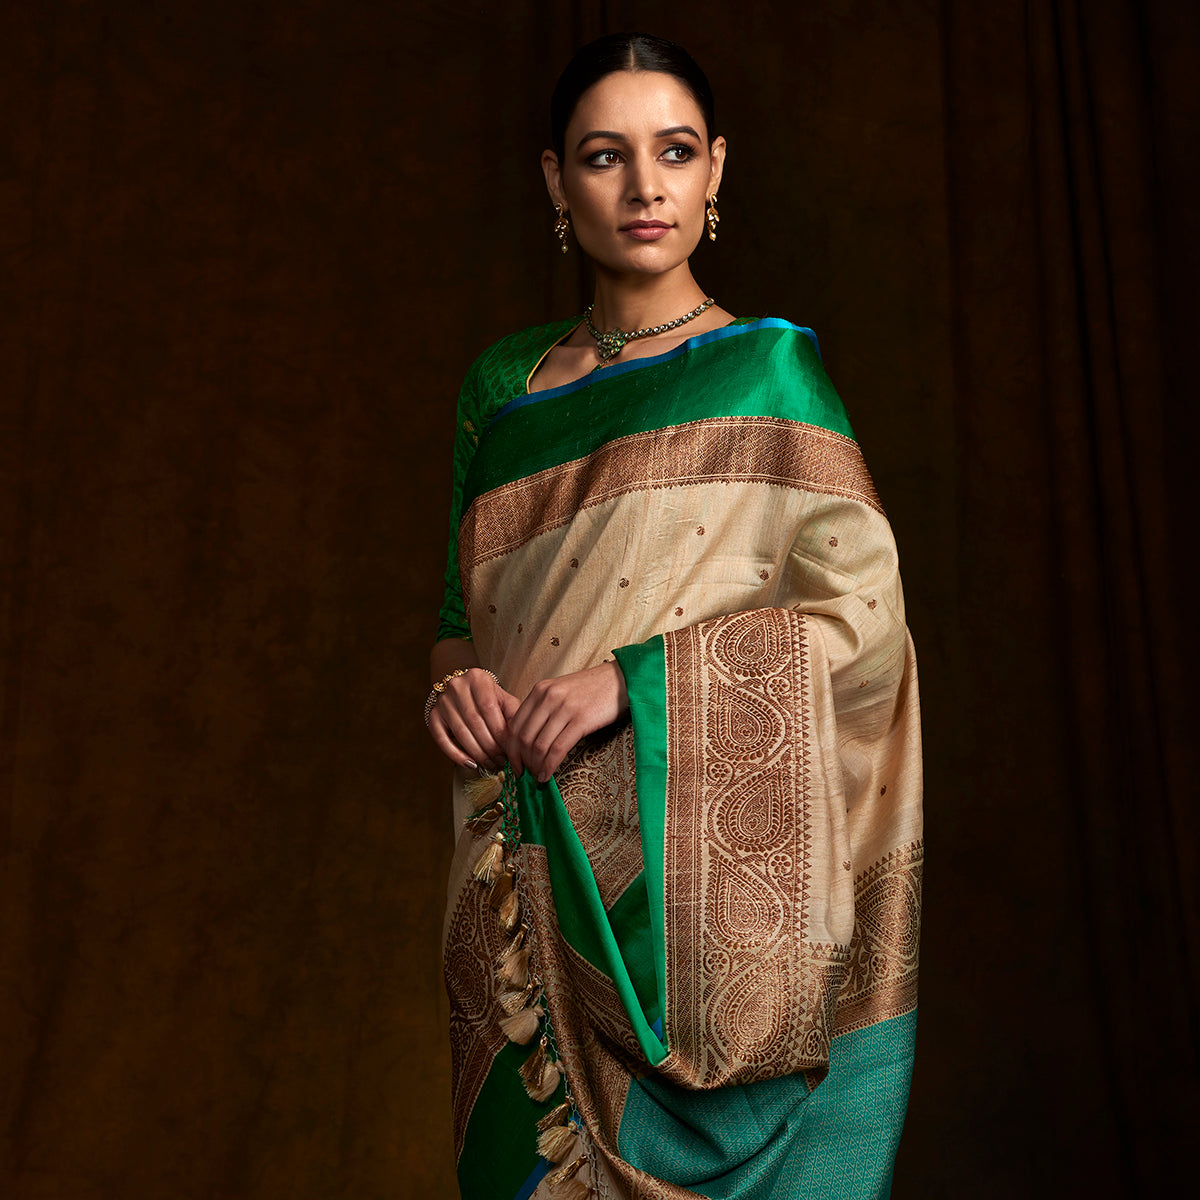 bc48e557ac Handwoven banarasi tusser saree with kadhwa boota woven in antique zar -  WeaverStory